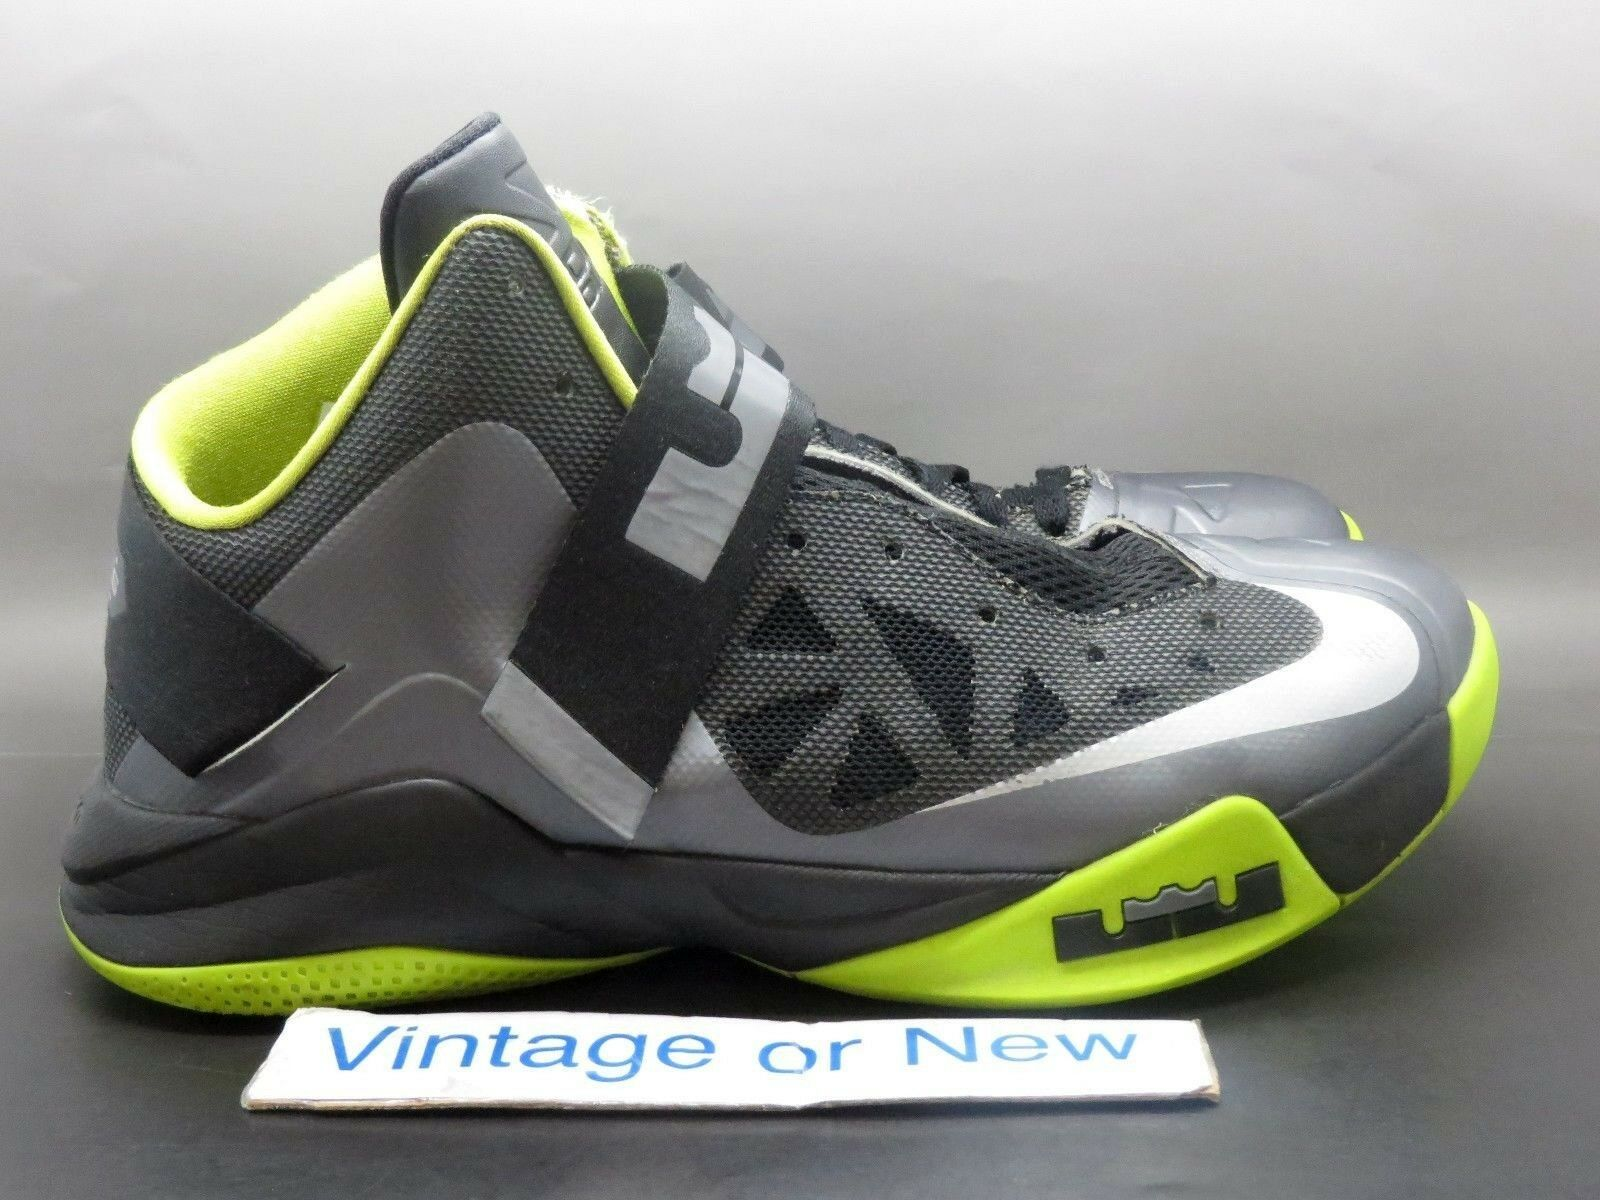 Nike Zoom LeBron Soldier VI 6 Cool Grey Black Volt sz 10